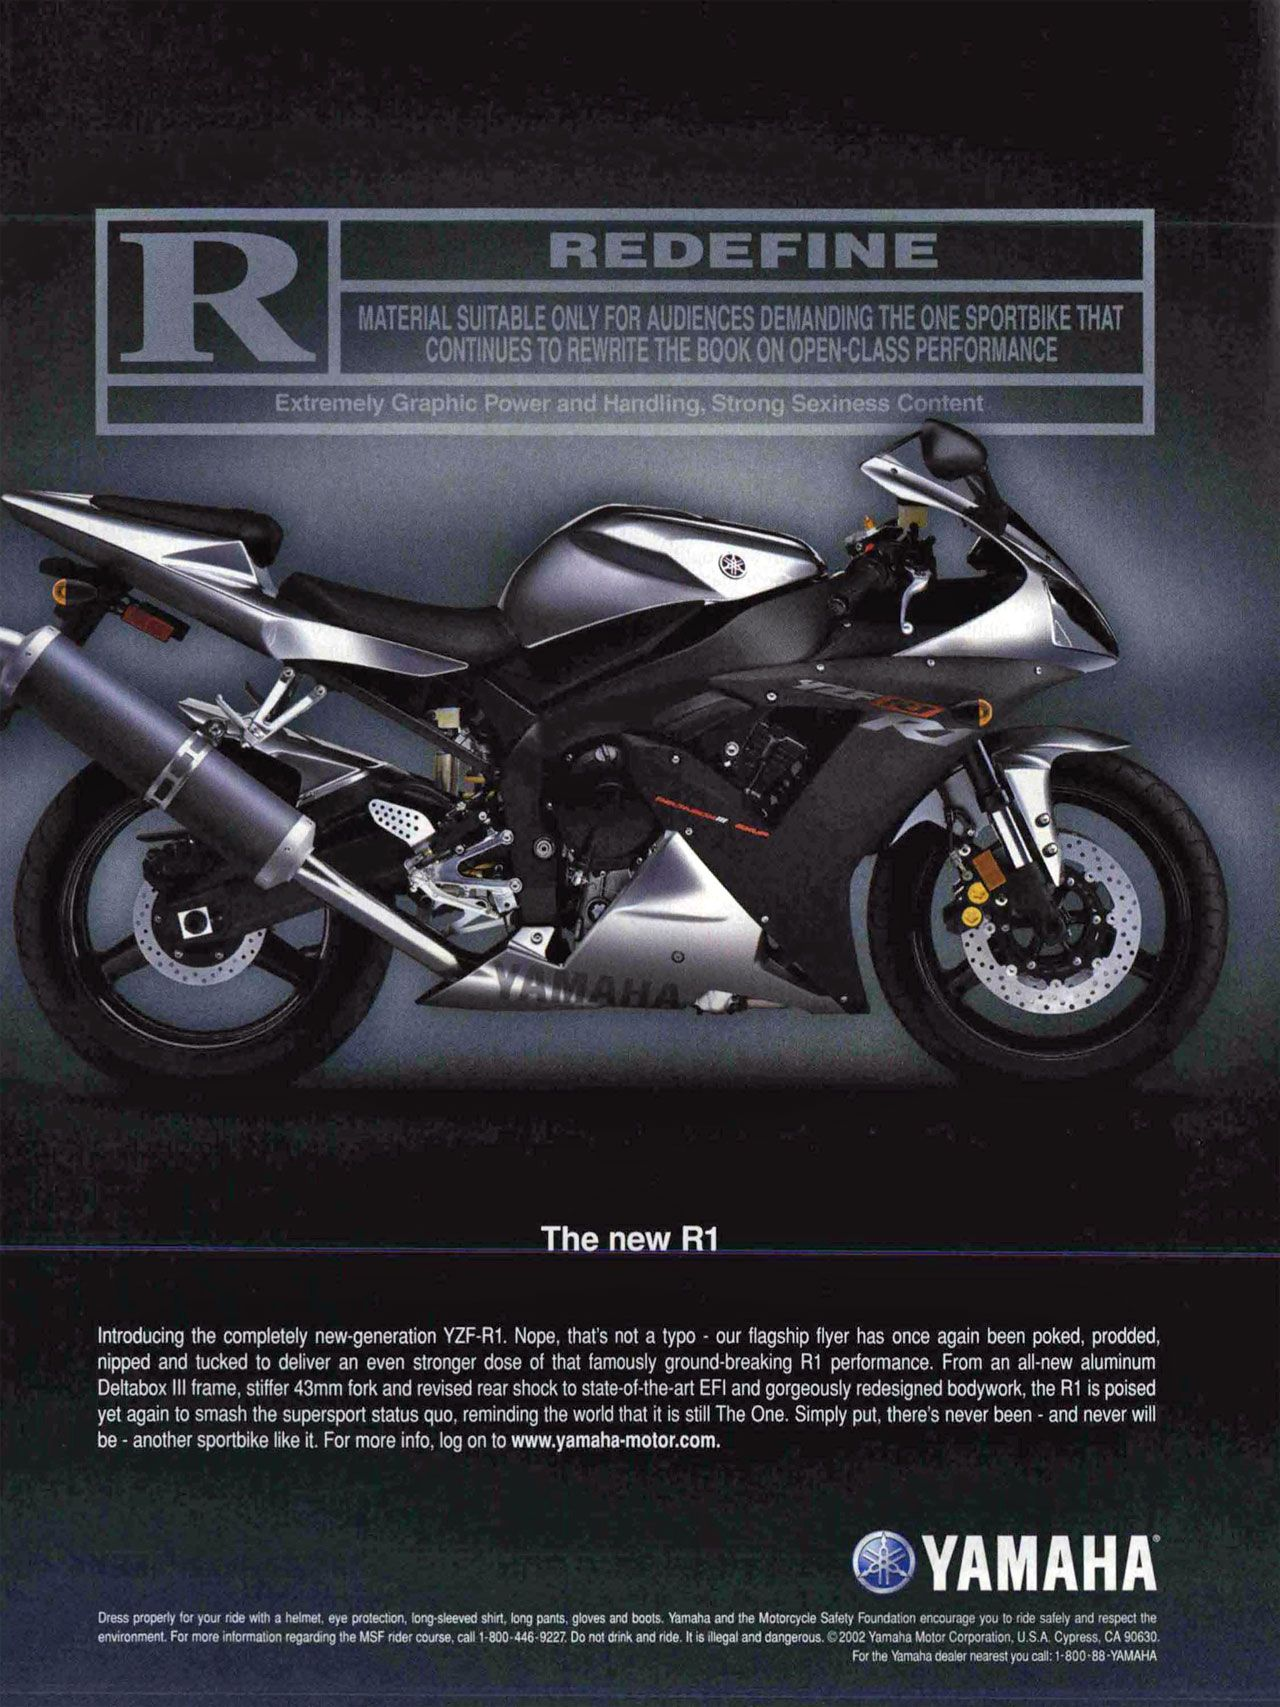 REDEFINE MATERIAL SUITABLE ONLY FOR AUDIENCES DEMANDING THE ONE SPORTBIKE THAT CONTINUES TO REWRITE THE BOOK ON OPEN-CLASS PERFORMANCE Extremely Graphic Power and Handling. Strong Sexiness Content Introducing the completely new-generation YZF-R1. Nope, that's not a typo - our flagship flyer has once again been poked. prodded, nipped and tucked to deliver an even stronger dose of that famously ground-breaking R1 performance. From an all-new aluminum Deltabox III frame. stiffer 43mm fork and revised rear shock to state-of-the-art EFI and gorgeously redesigned bodywork, the R1 is poised yet again to smash the supersport status quo, reminding the world that it is still The One. Simply put, there's never been - and never will be - another sportbike like it. For more info. log on to www.yamaha-motor.com. Dress properly for your ride with a helmet. eye protection, long•steeved shirt. long pants. gloves and boots. Yamaha and the Motorcycle Safety Foundation encourage you to ride safely and respect the environment. For more information regarding the M5F rider course, call 1-800-446-9227. Do not drink and ride. It is illegal and dangerous. 2002 Yamaha Motor Corporation. U S A Cypress. CA 90630. For the Yamaha dealer nearest you call: 1-800.88-YAMAHA